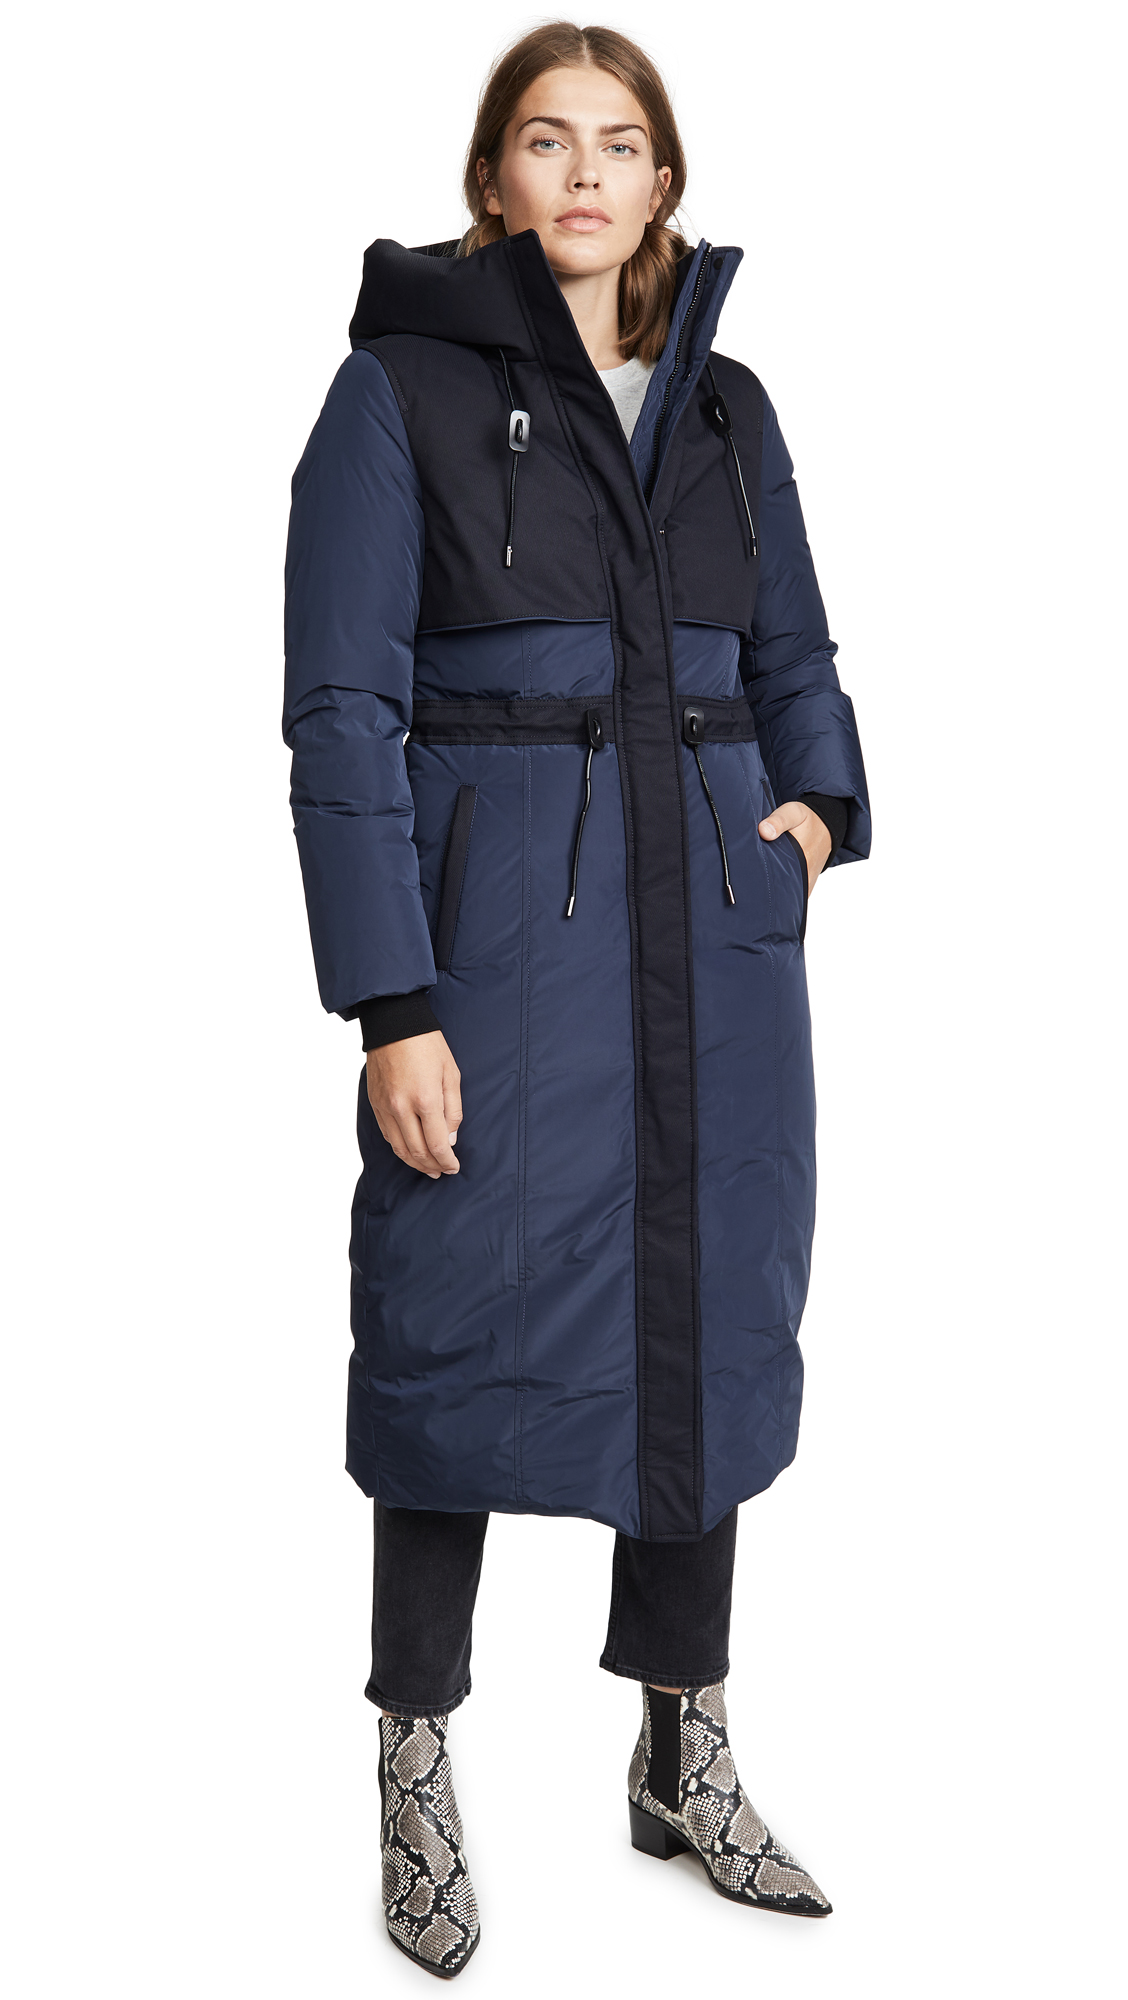 Buy Mackage Leanne Down Jacket online beautiful Mackage Jackets, Coats, Down Jackets